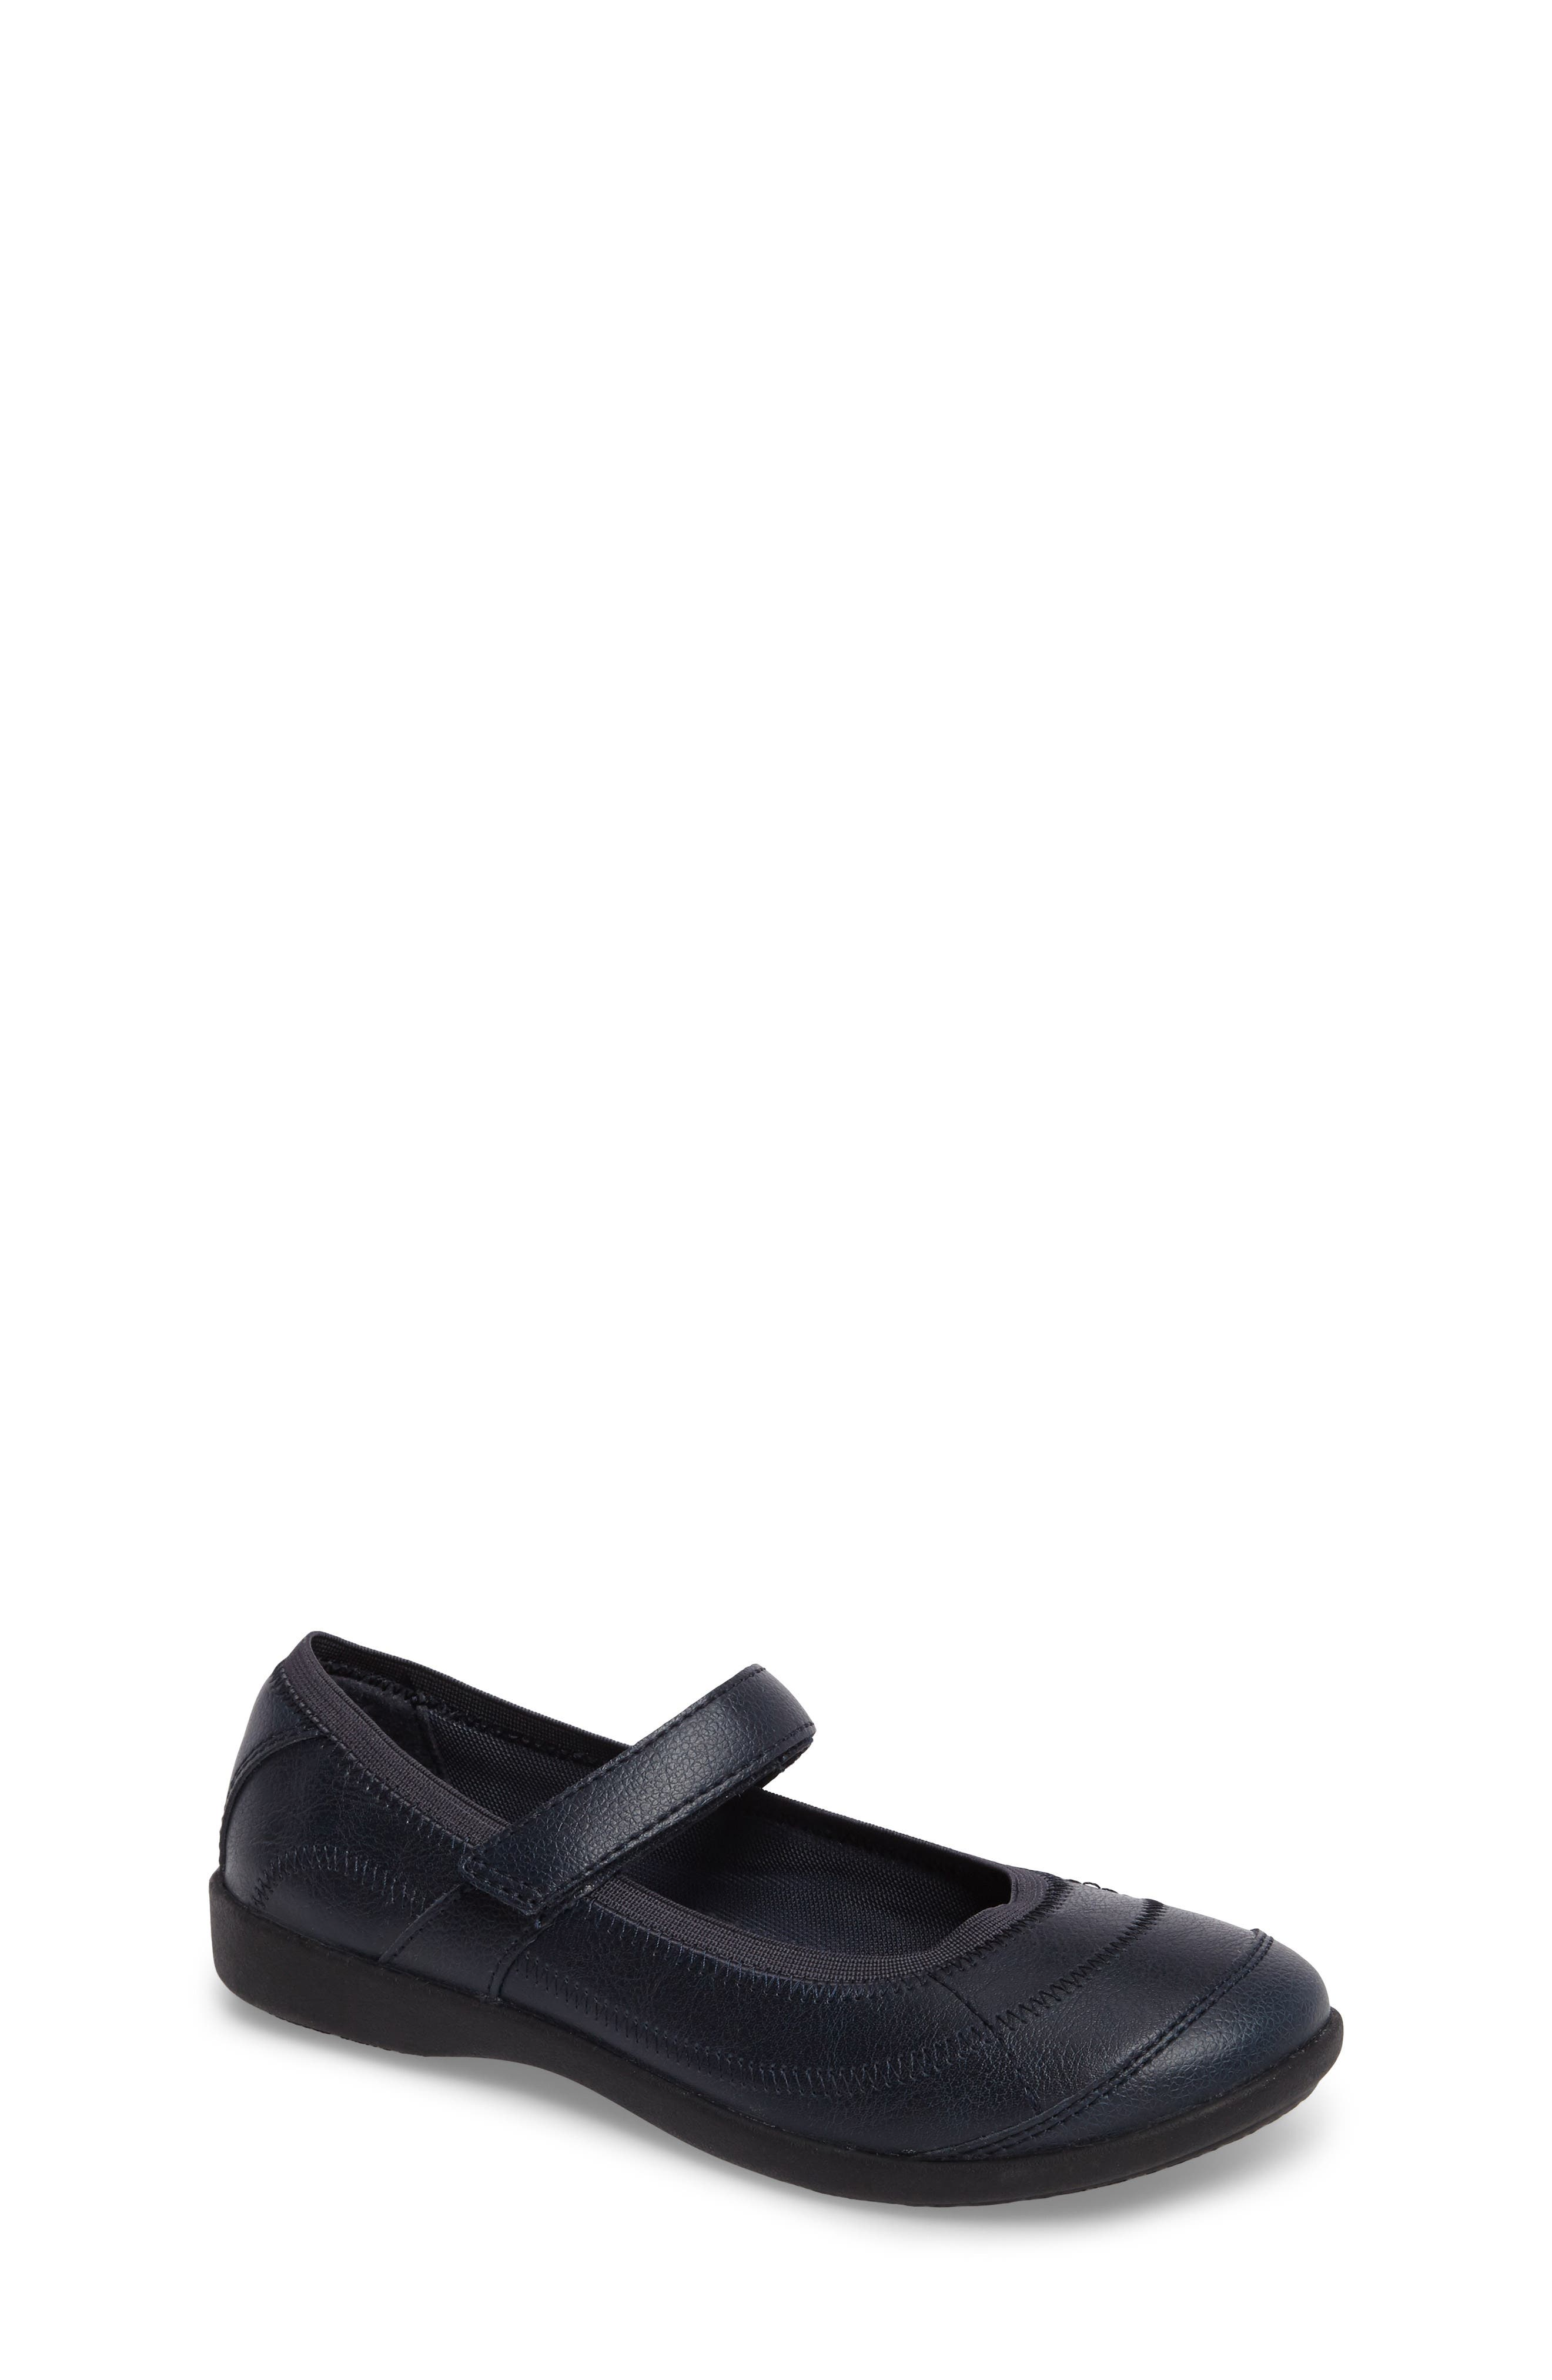 HUSH PUPPIES<SUP>®</SUP> Reese Mary Jane Flat, Main, color, NAVY LEATHER